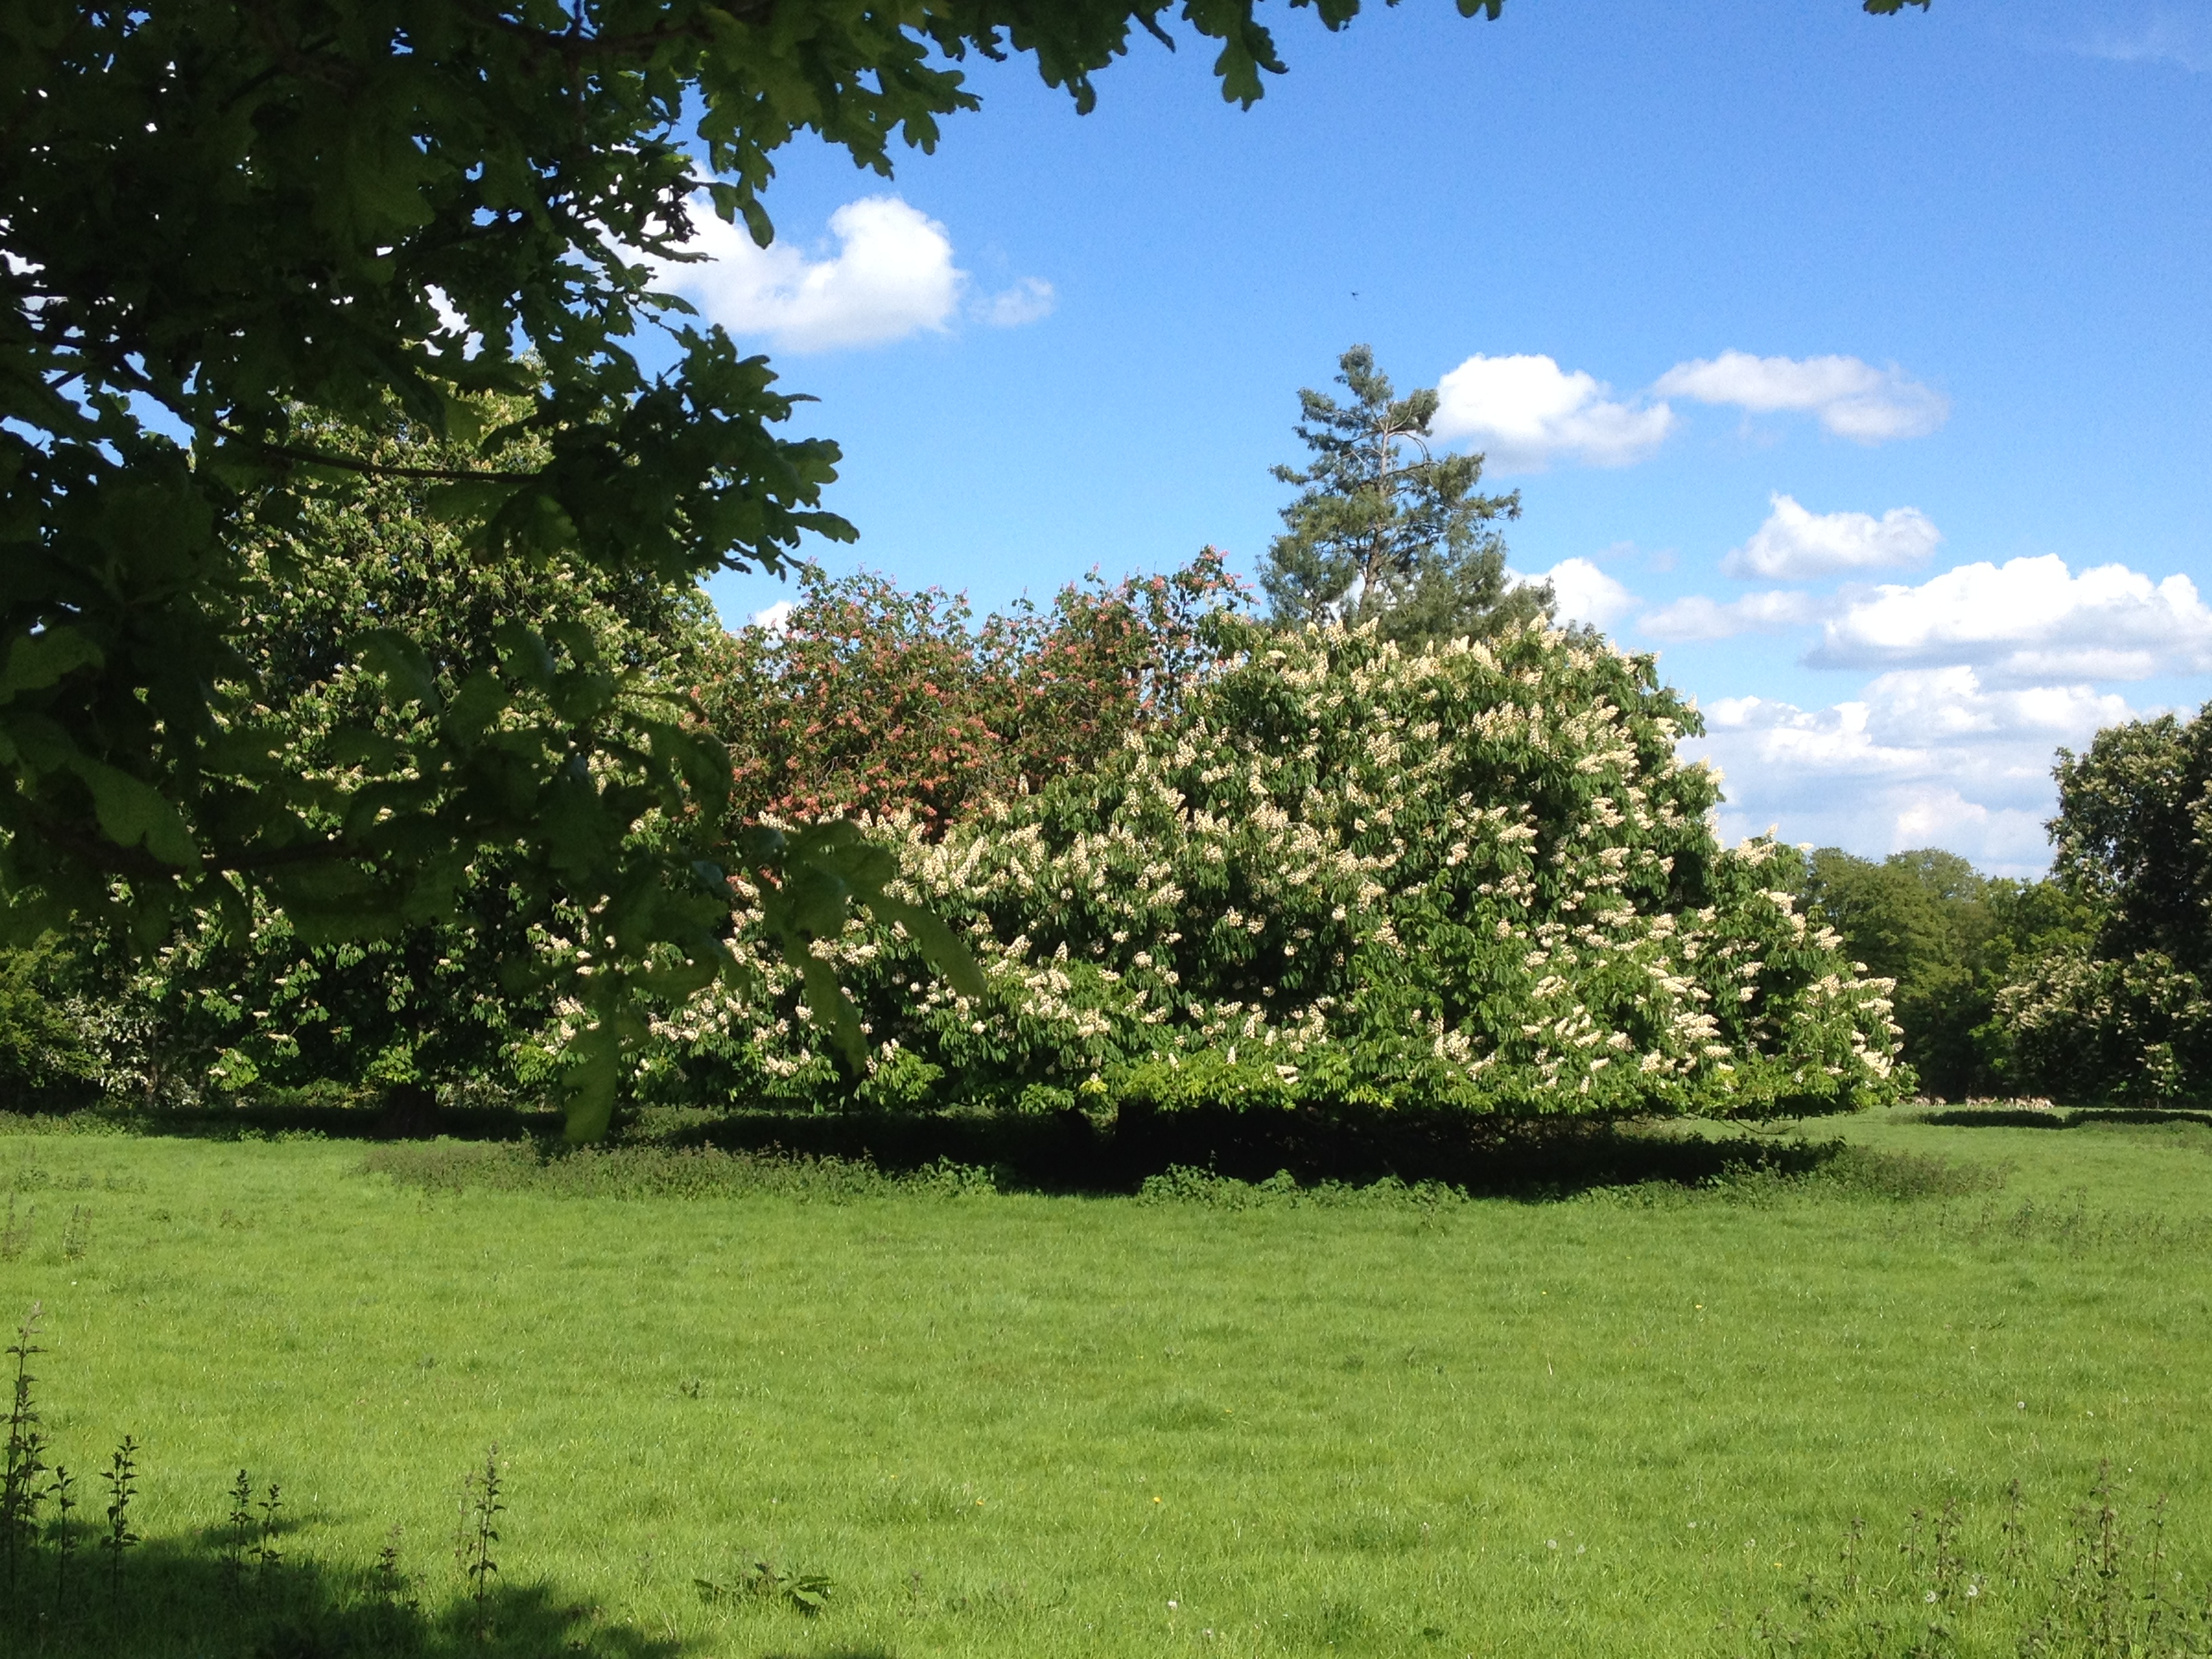 2 Horse chestnuts IMG_0875